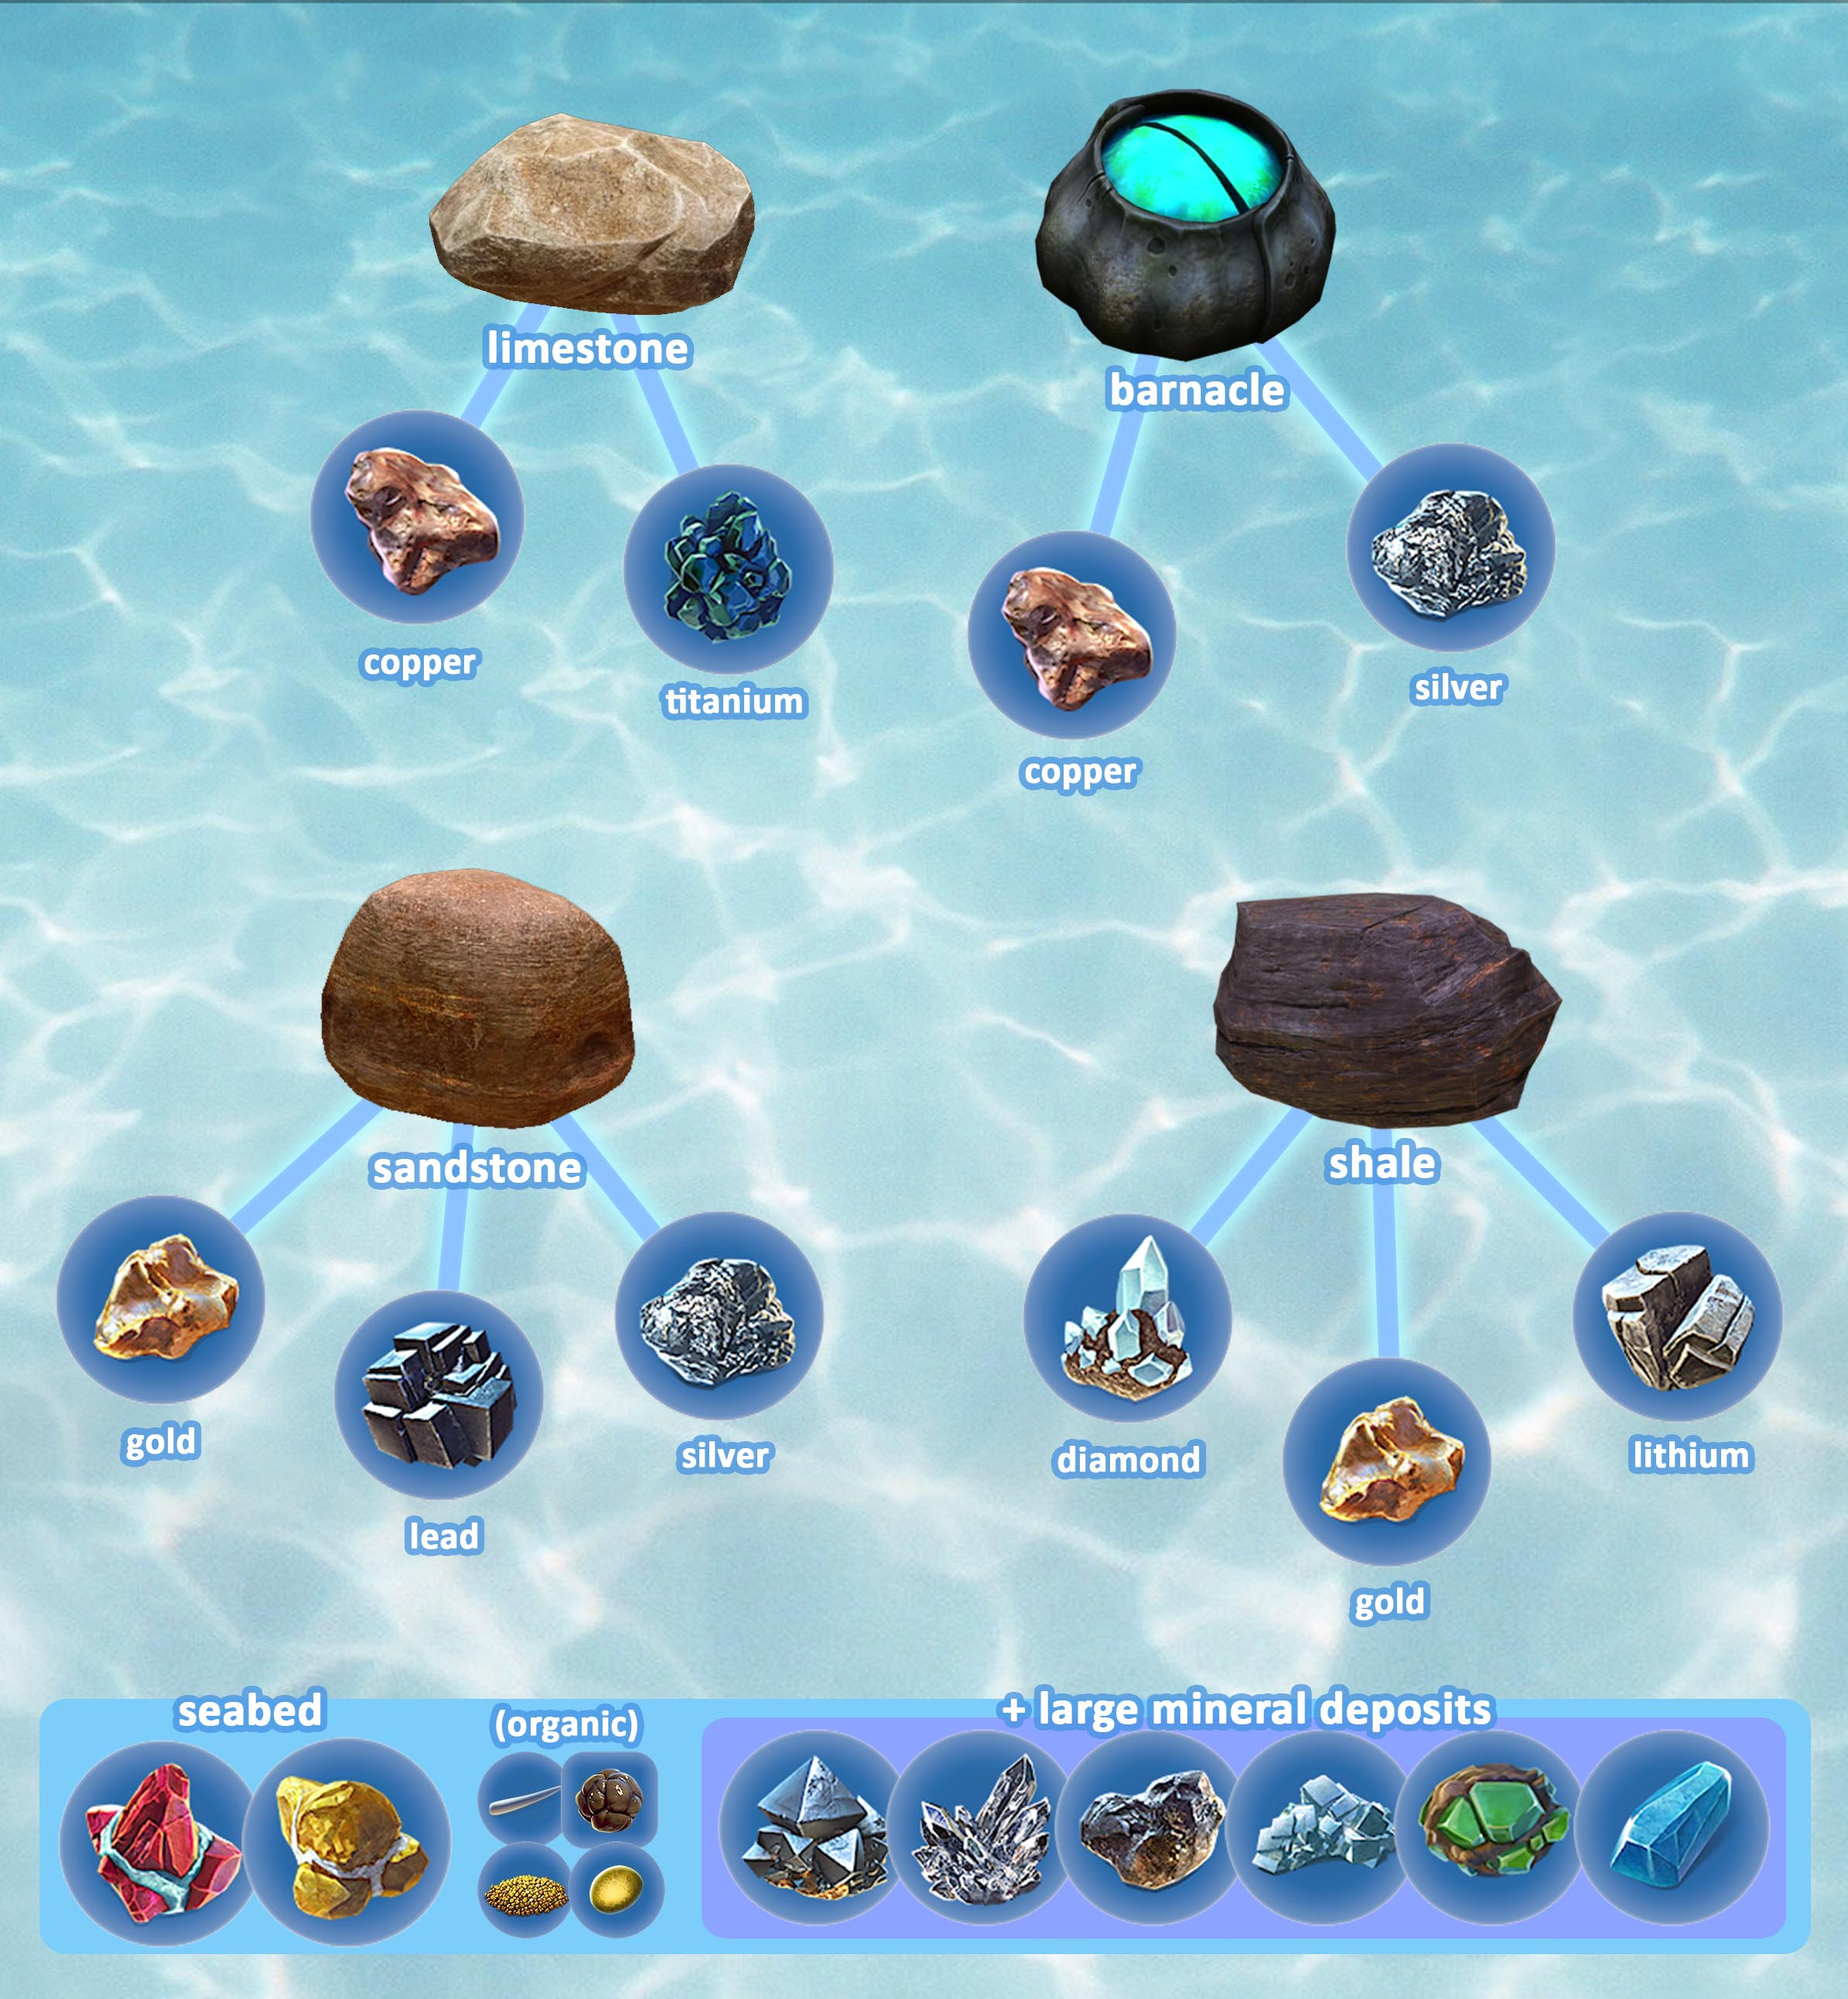 Raw Materials Subnautica Wiki Fandom It is constructed with the habitat builder, and allows the player to generate a 3d map of the surrounding biome, scan for resources, and conduct scouting via controllable camera drones. raw materials subnautica wiki fandom